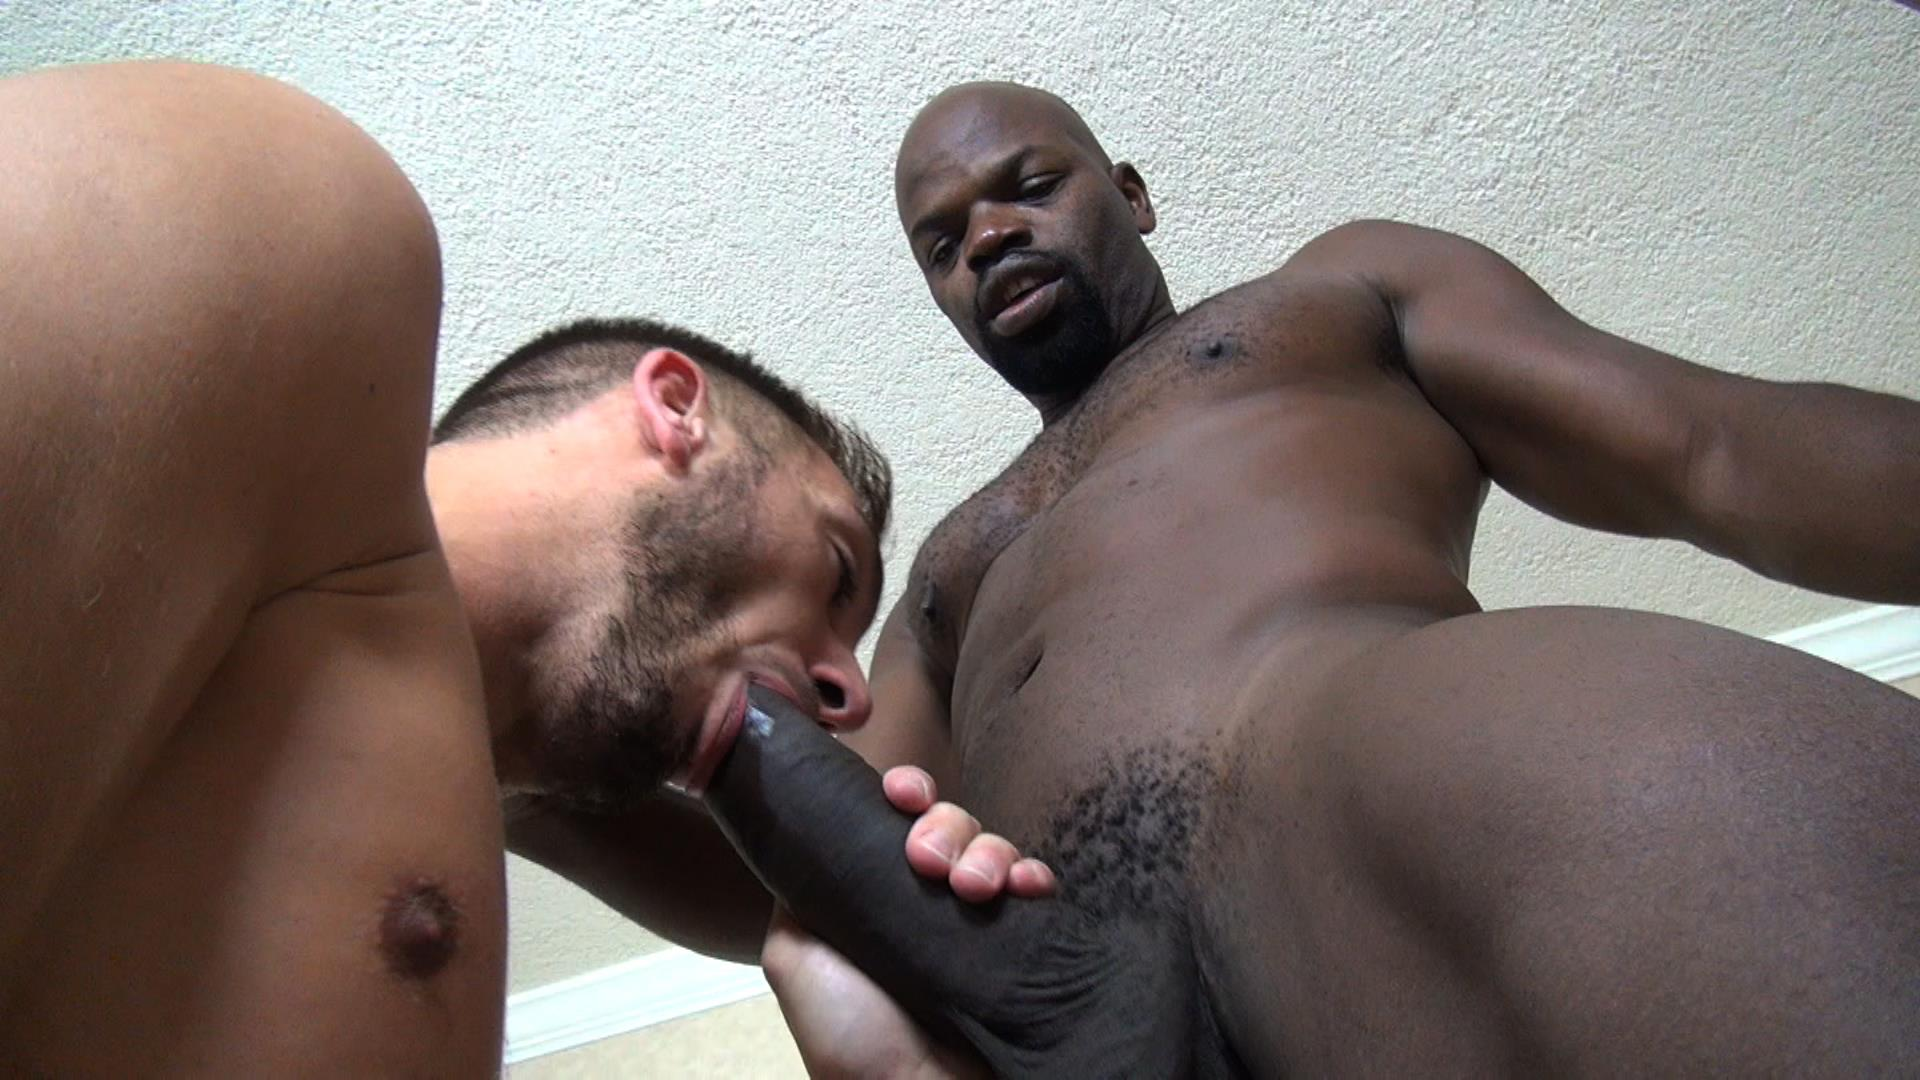 Hot gay interracial sex